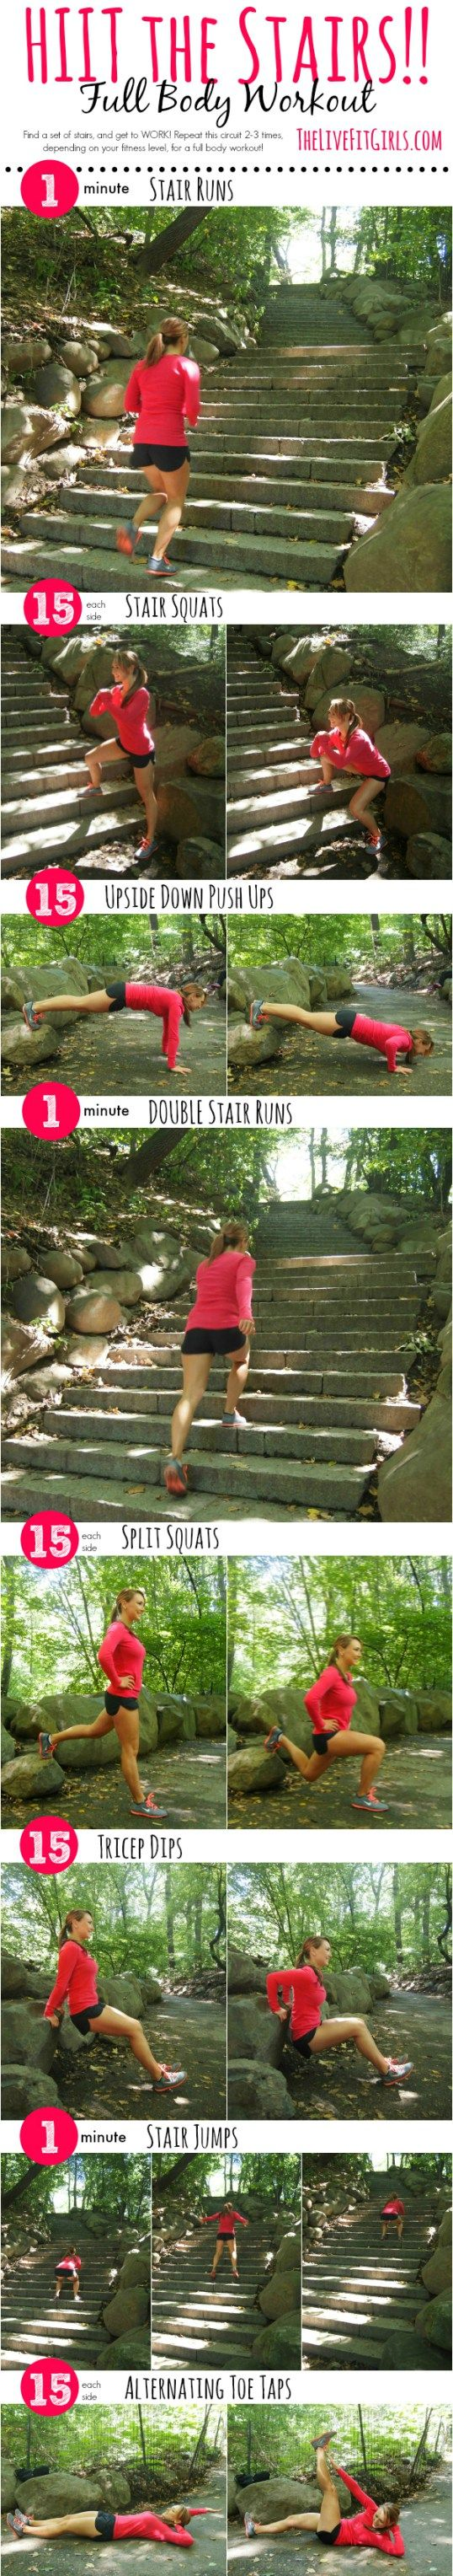 Stair Workout - everything minus the toe taps.  And double stair runs may be out until the ankle is stronger.